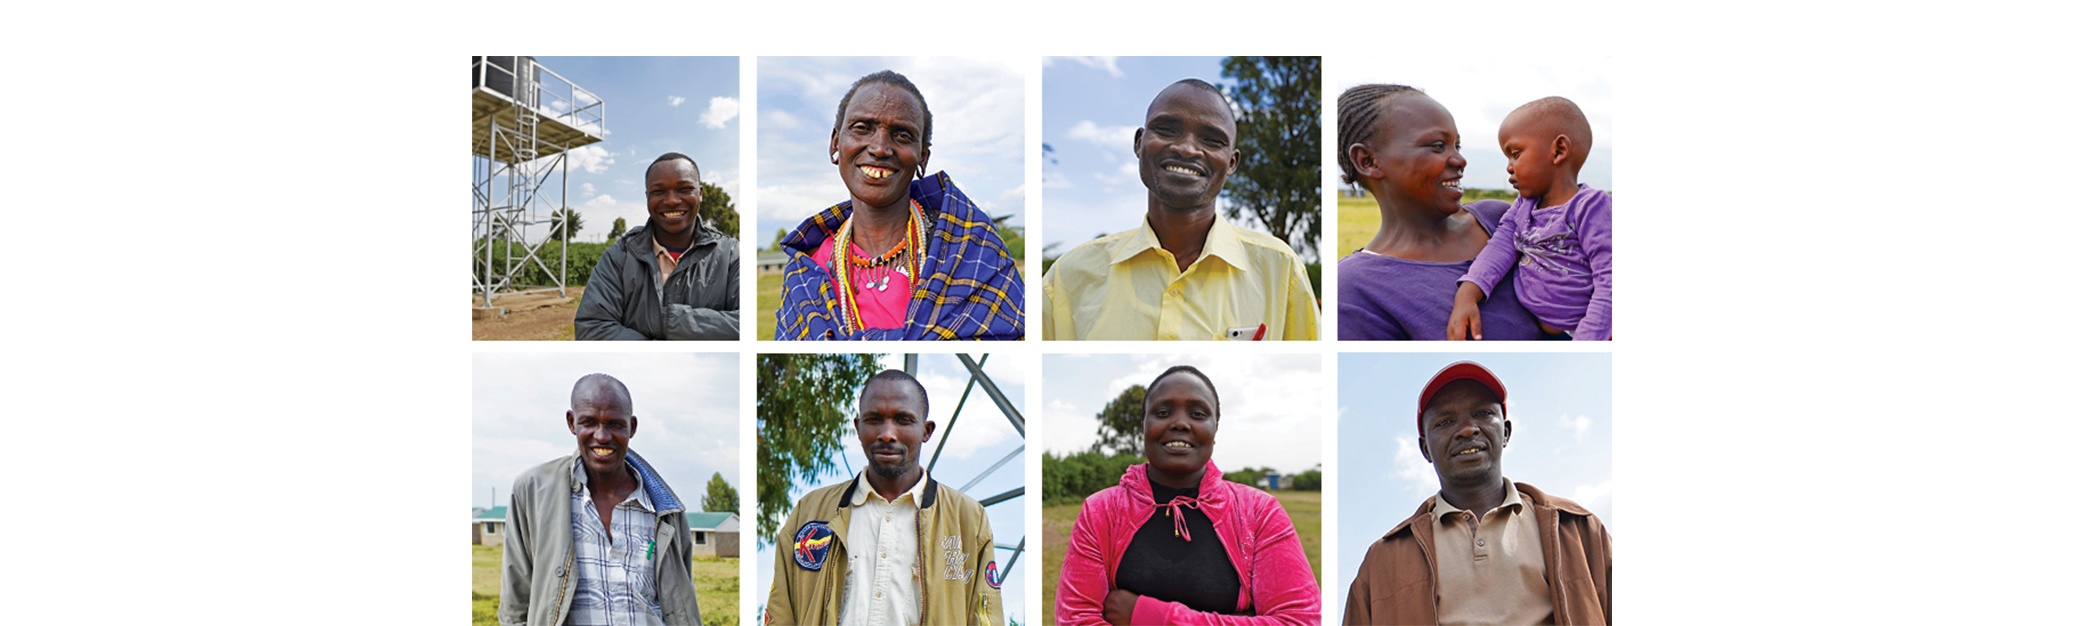 Meet the women and men in Kenya's Maasai Mara responsible for making their new water project sustainable for the long haul.